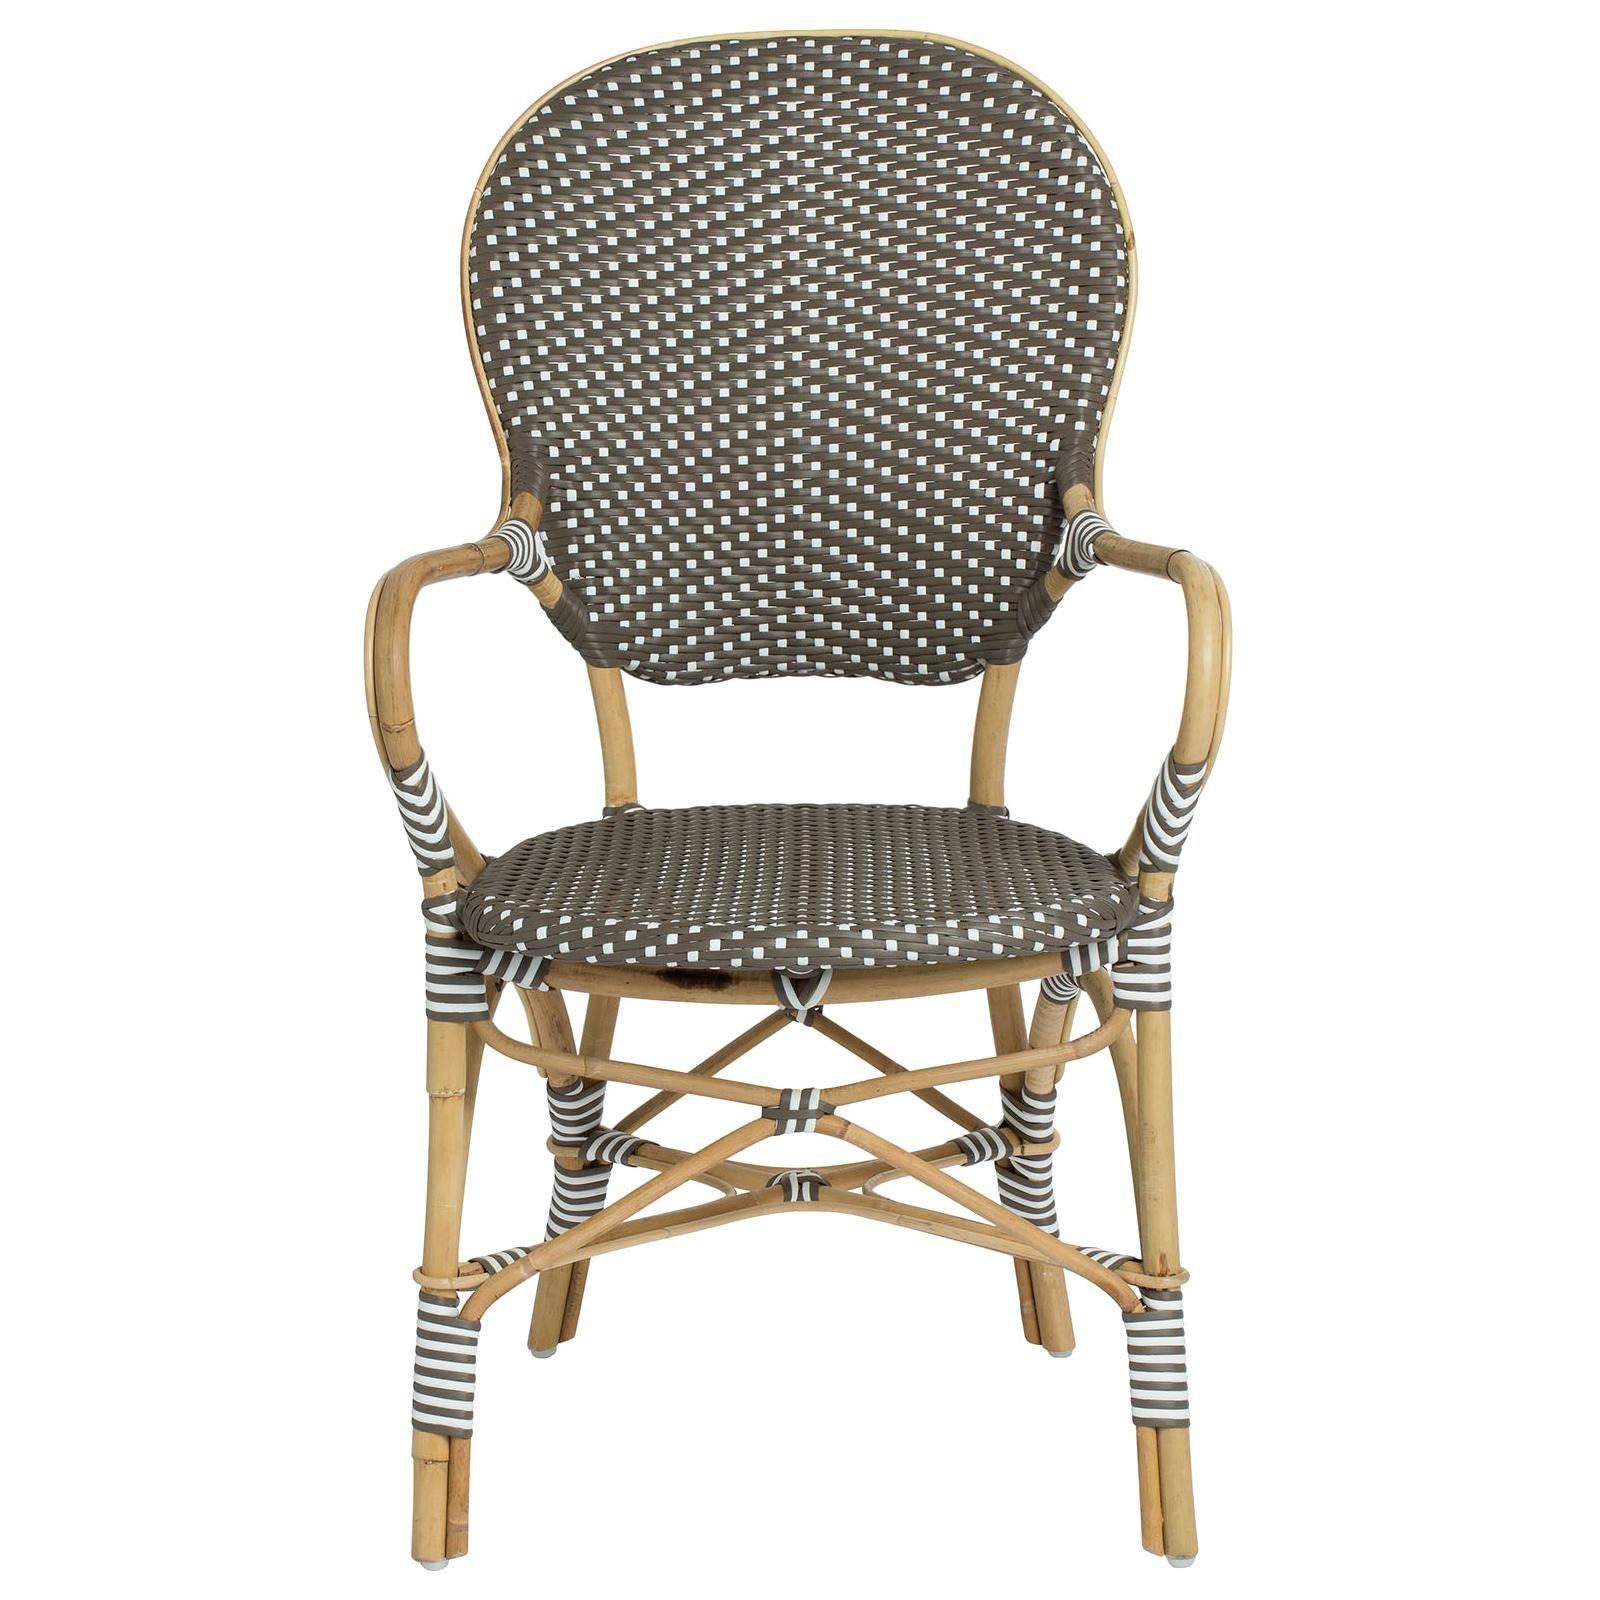 Sika Design Isabell Woven Rattan Bistro Armchair in Cappuccino with White Dots